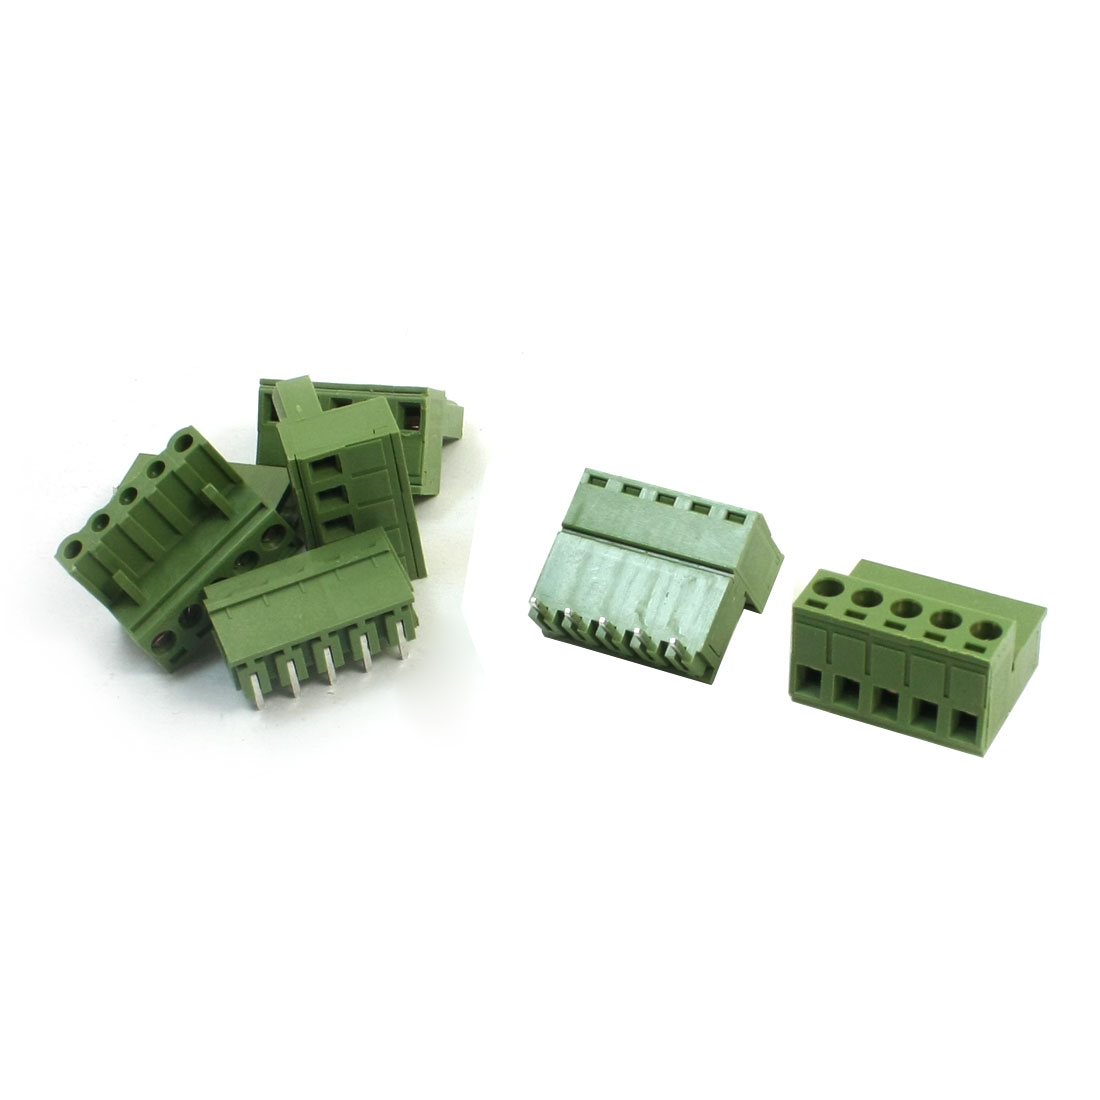 5Pcs 300V 10A 5.08mm Pitch 12-24AWG 5 Pole Pluggable in PCB Mount Screw Terminal Barrier Block Connector Green